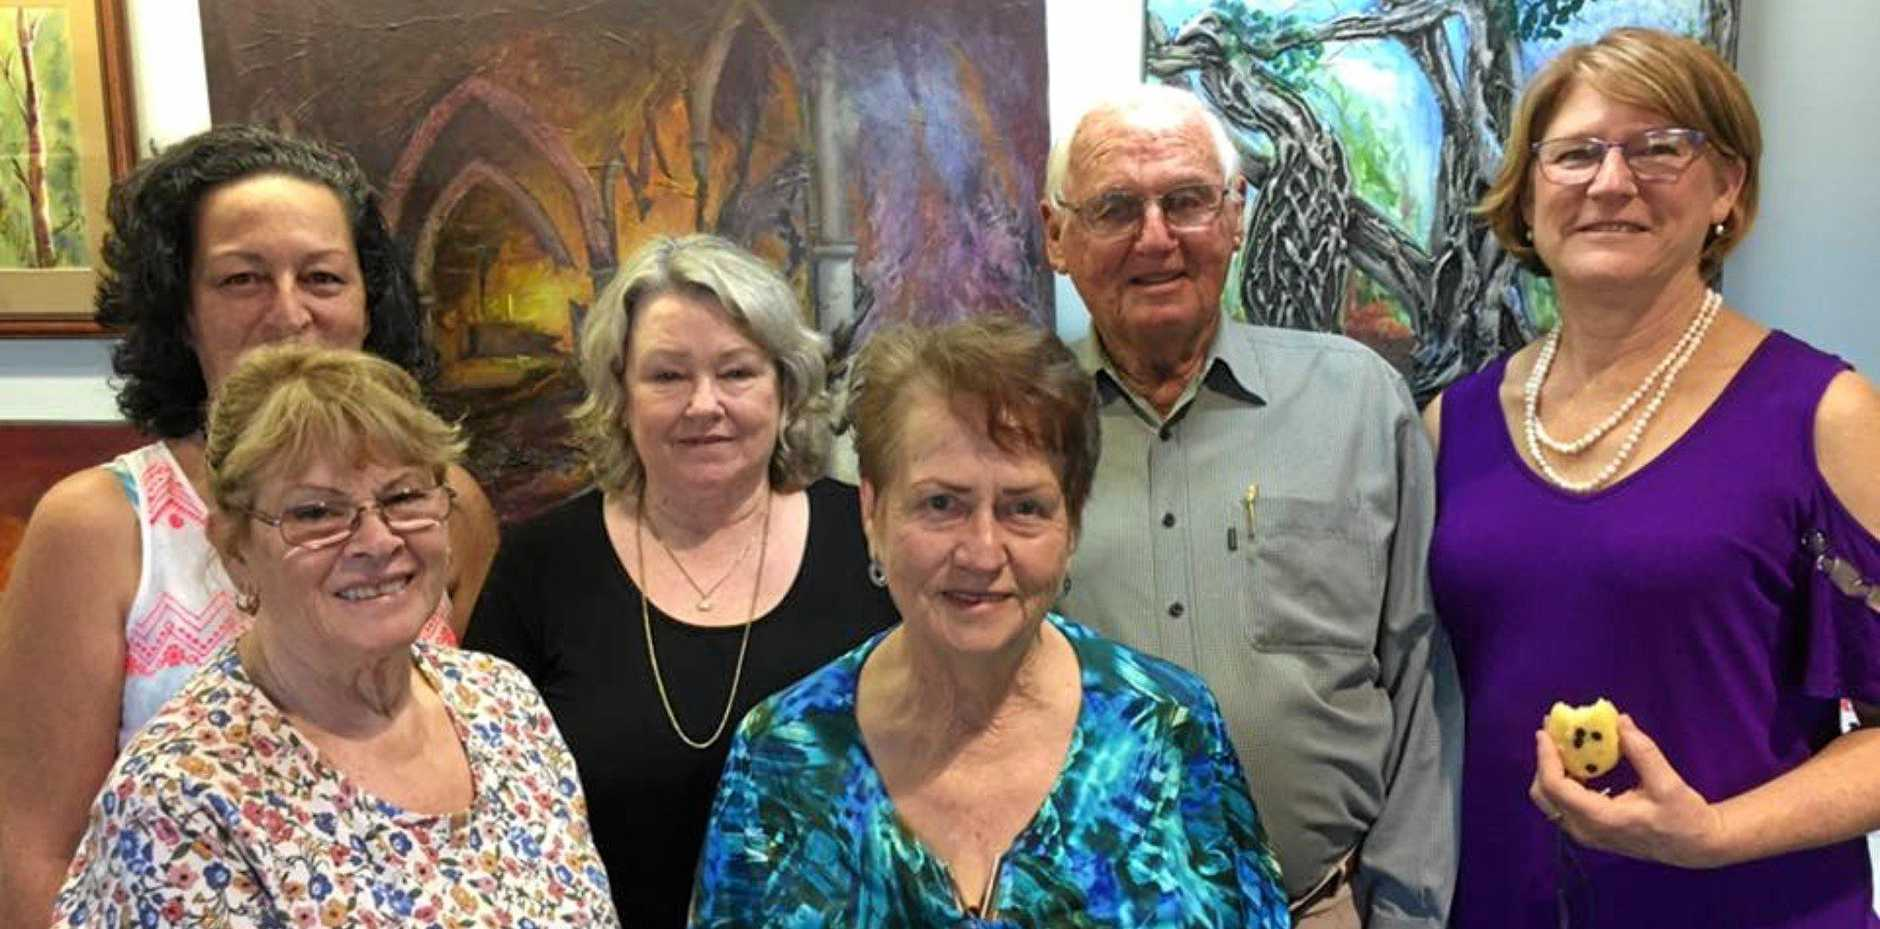 ON SHOW: Exhibiting paintings at Proserpine Museum are (back) Ingrid Ruck, Kim Bailey, Mitch Clarke, Leigh Skeav, (front) Sandra Hall and Dawn Pearce.